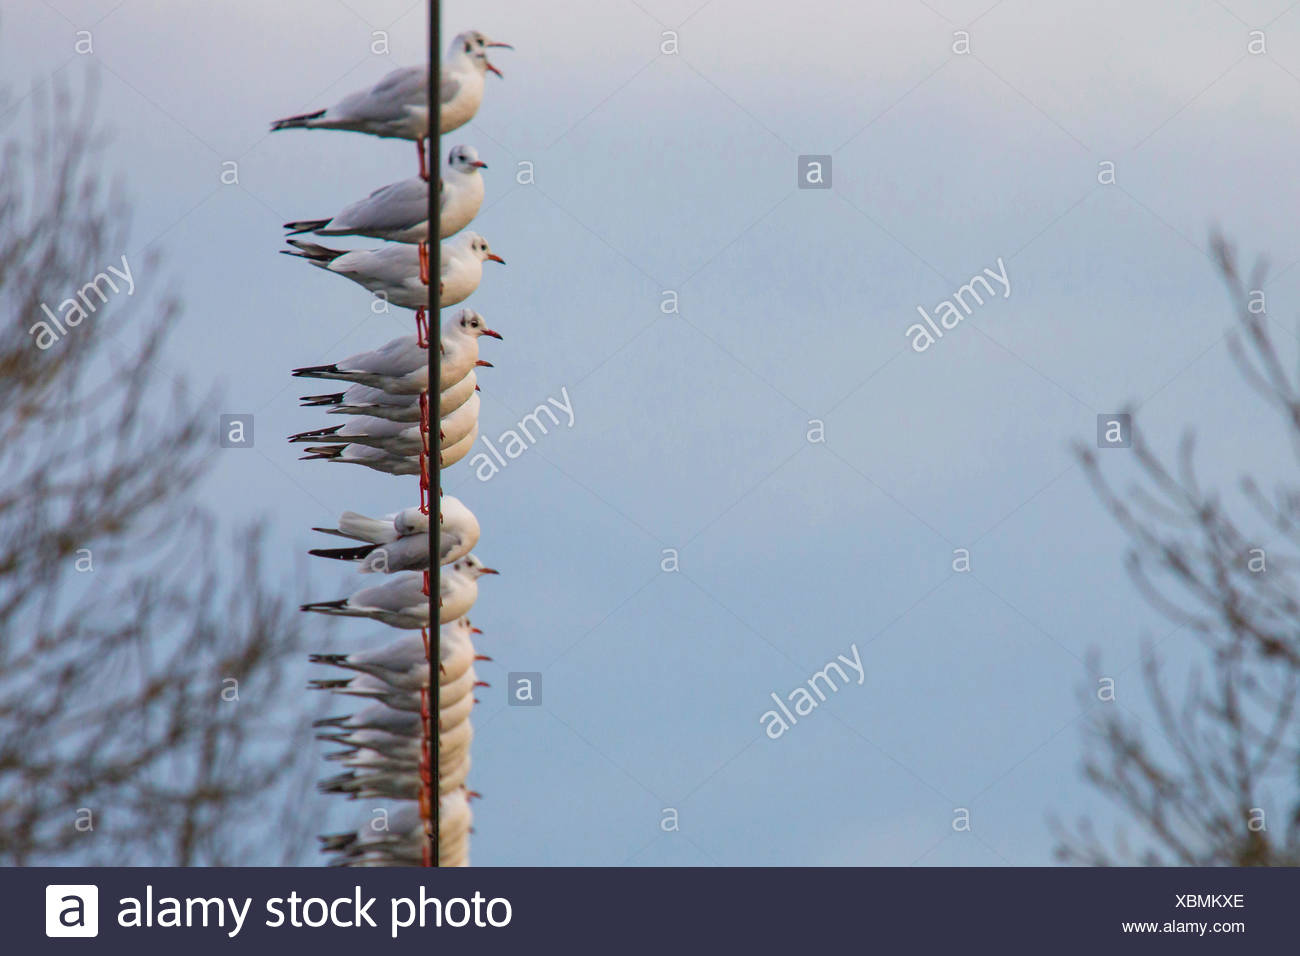 black-headed gull (Larus ridibundus, Chroicocephalus ridibundus), troop on a wire rope, Germany, Bavaria, Niederbayern, Lower Bavaria - Stock Image